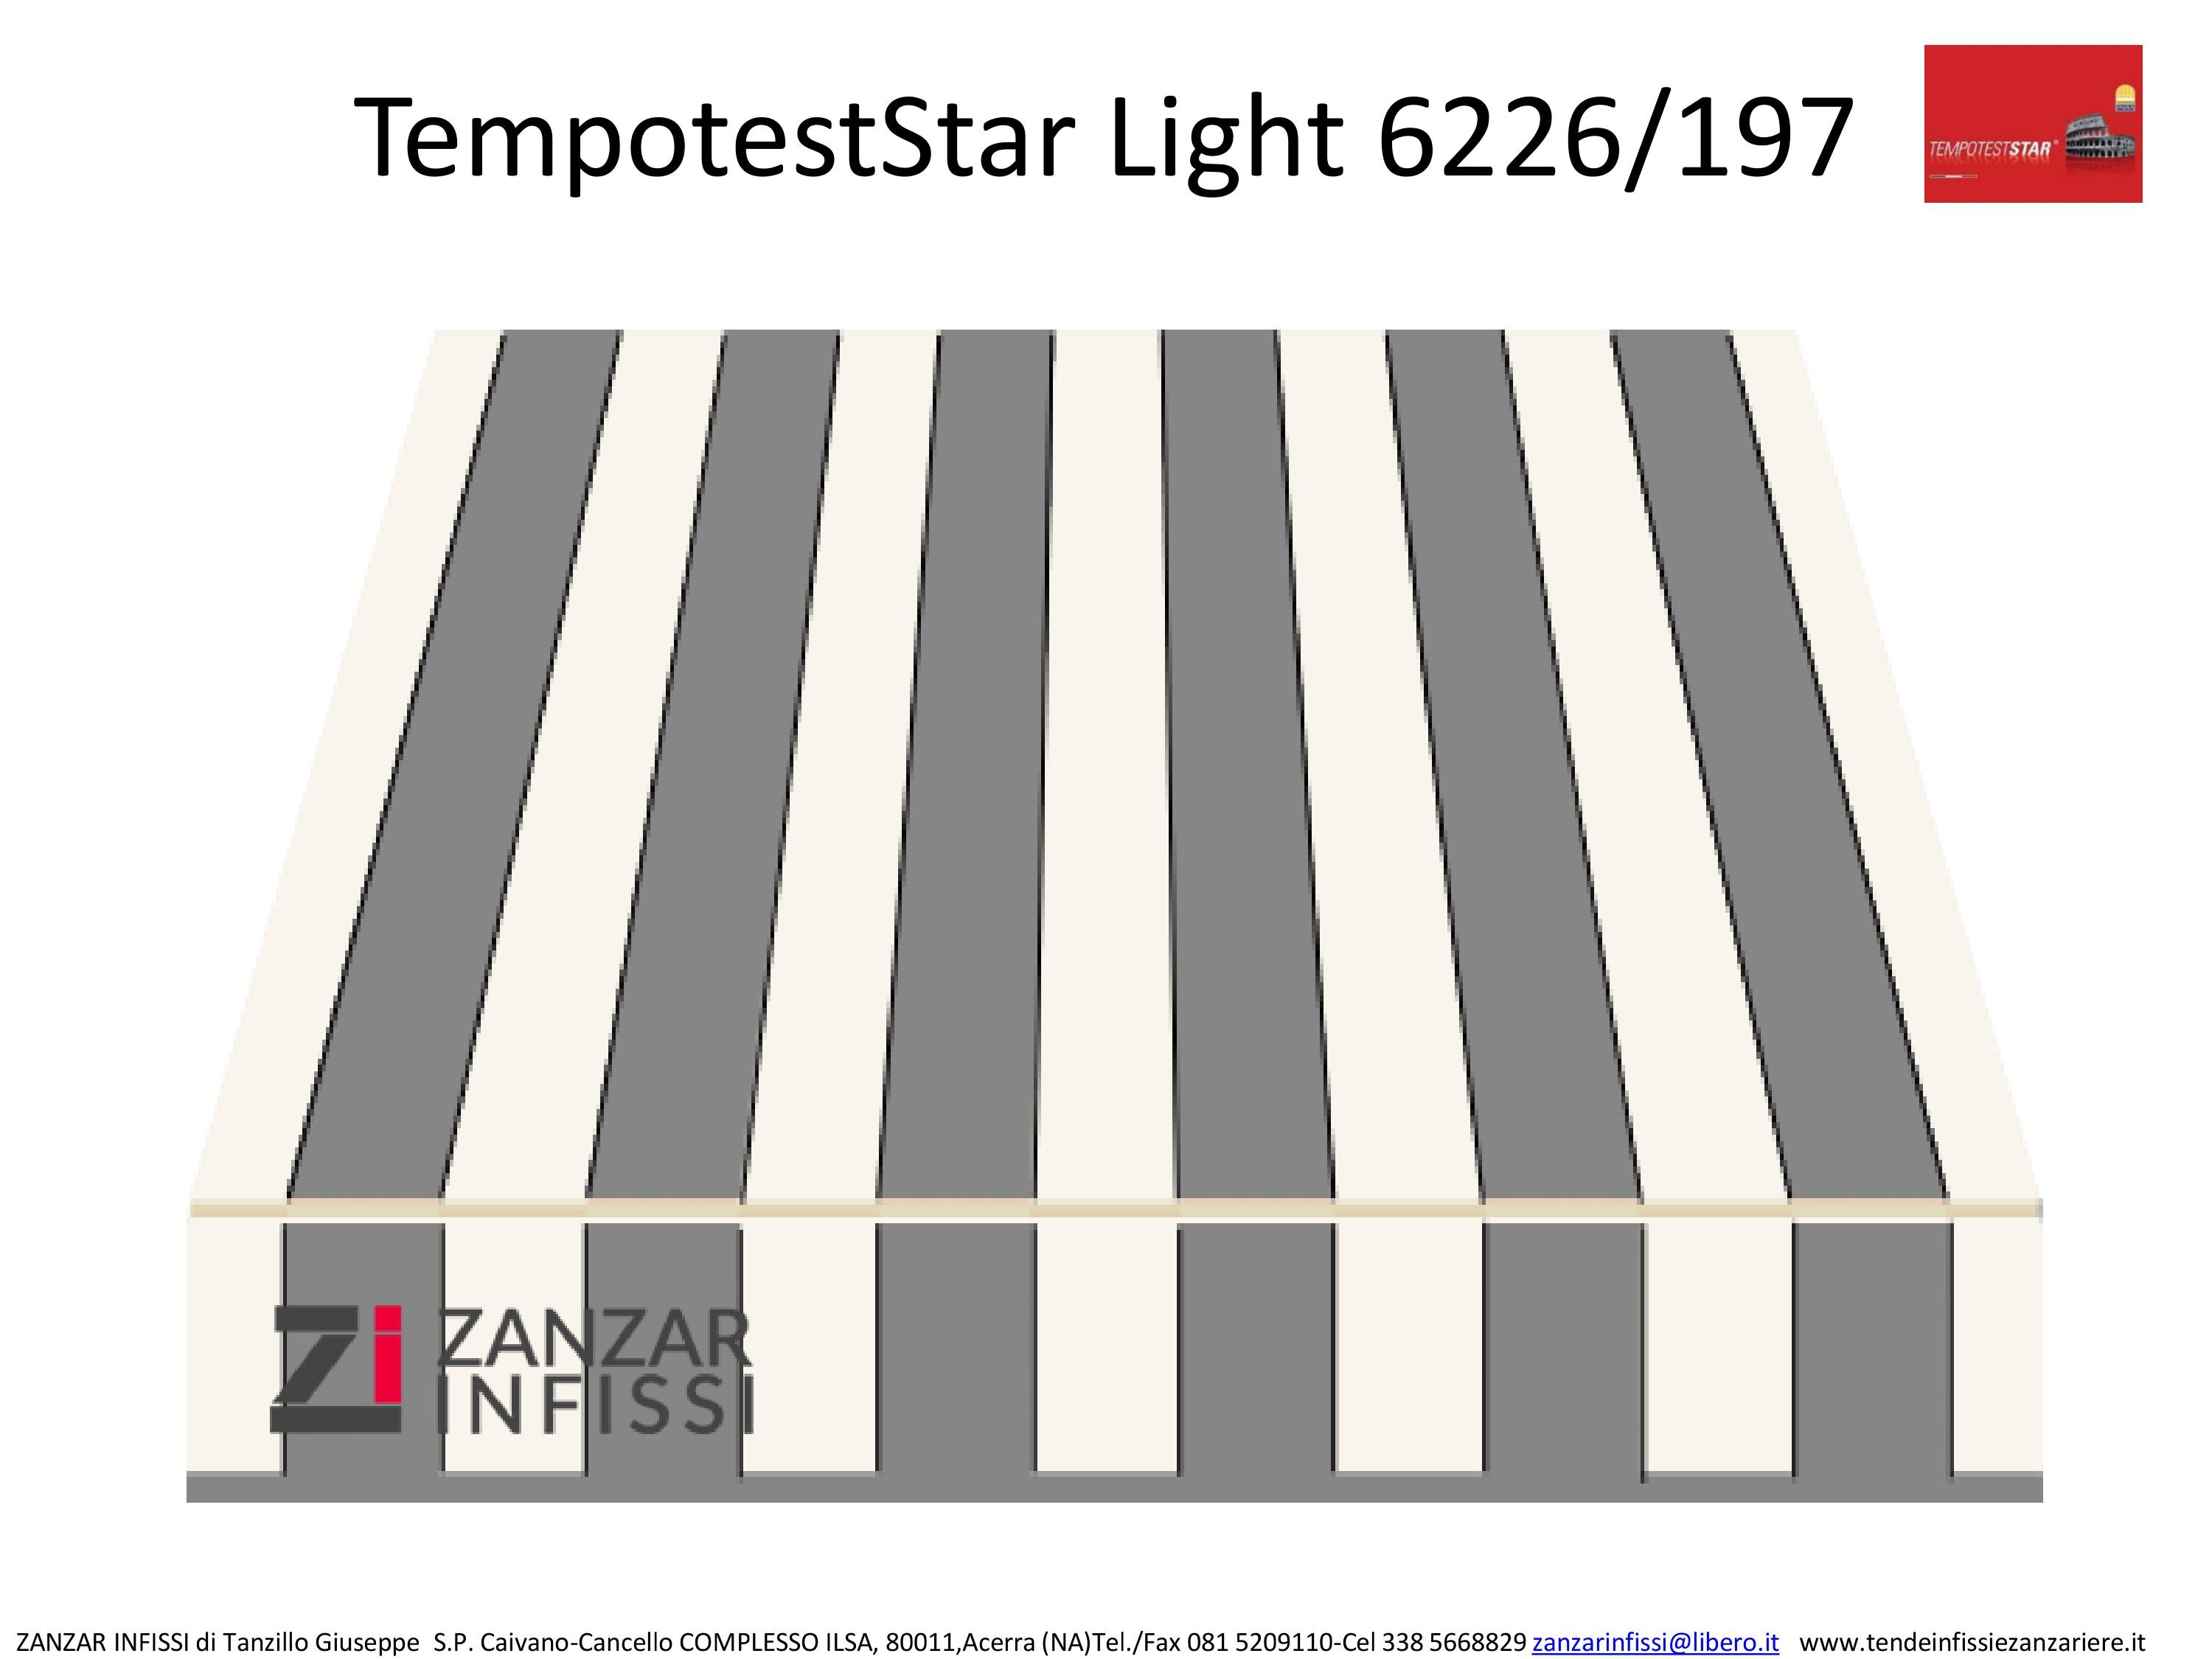 Tempotest star light 6226/197